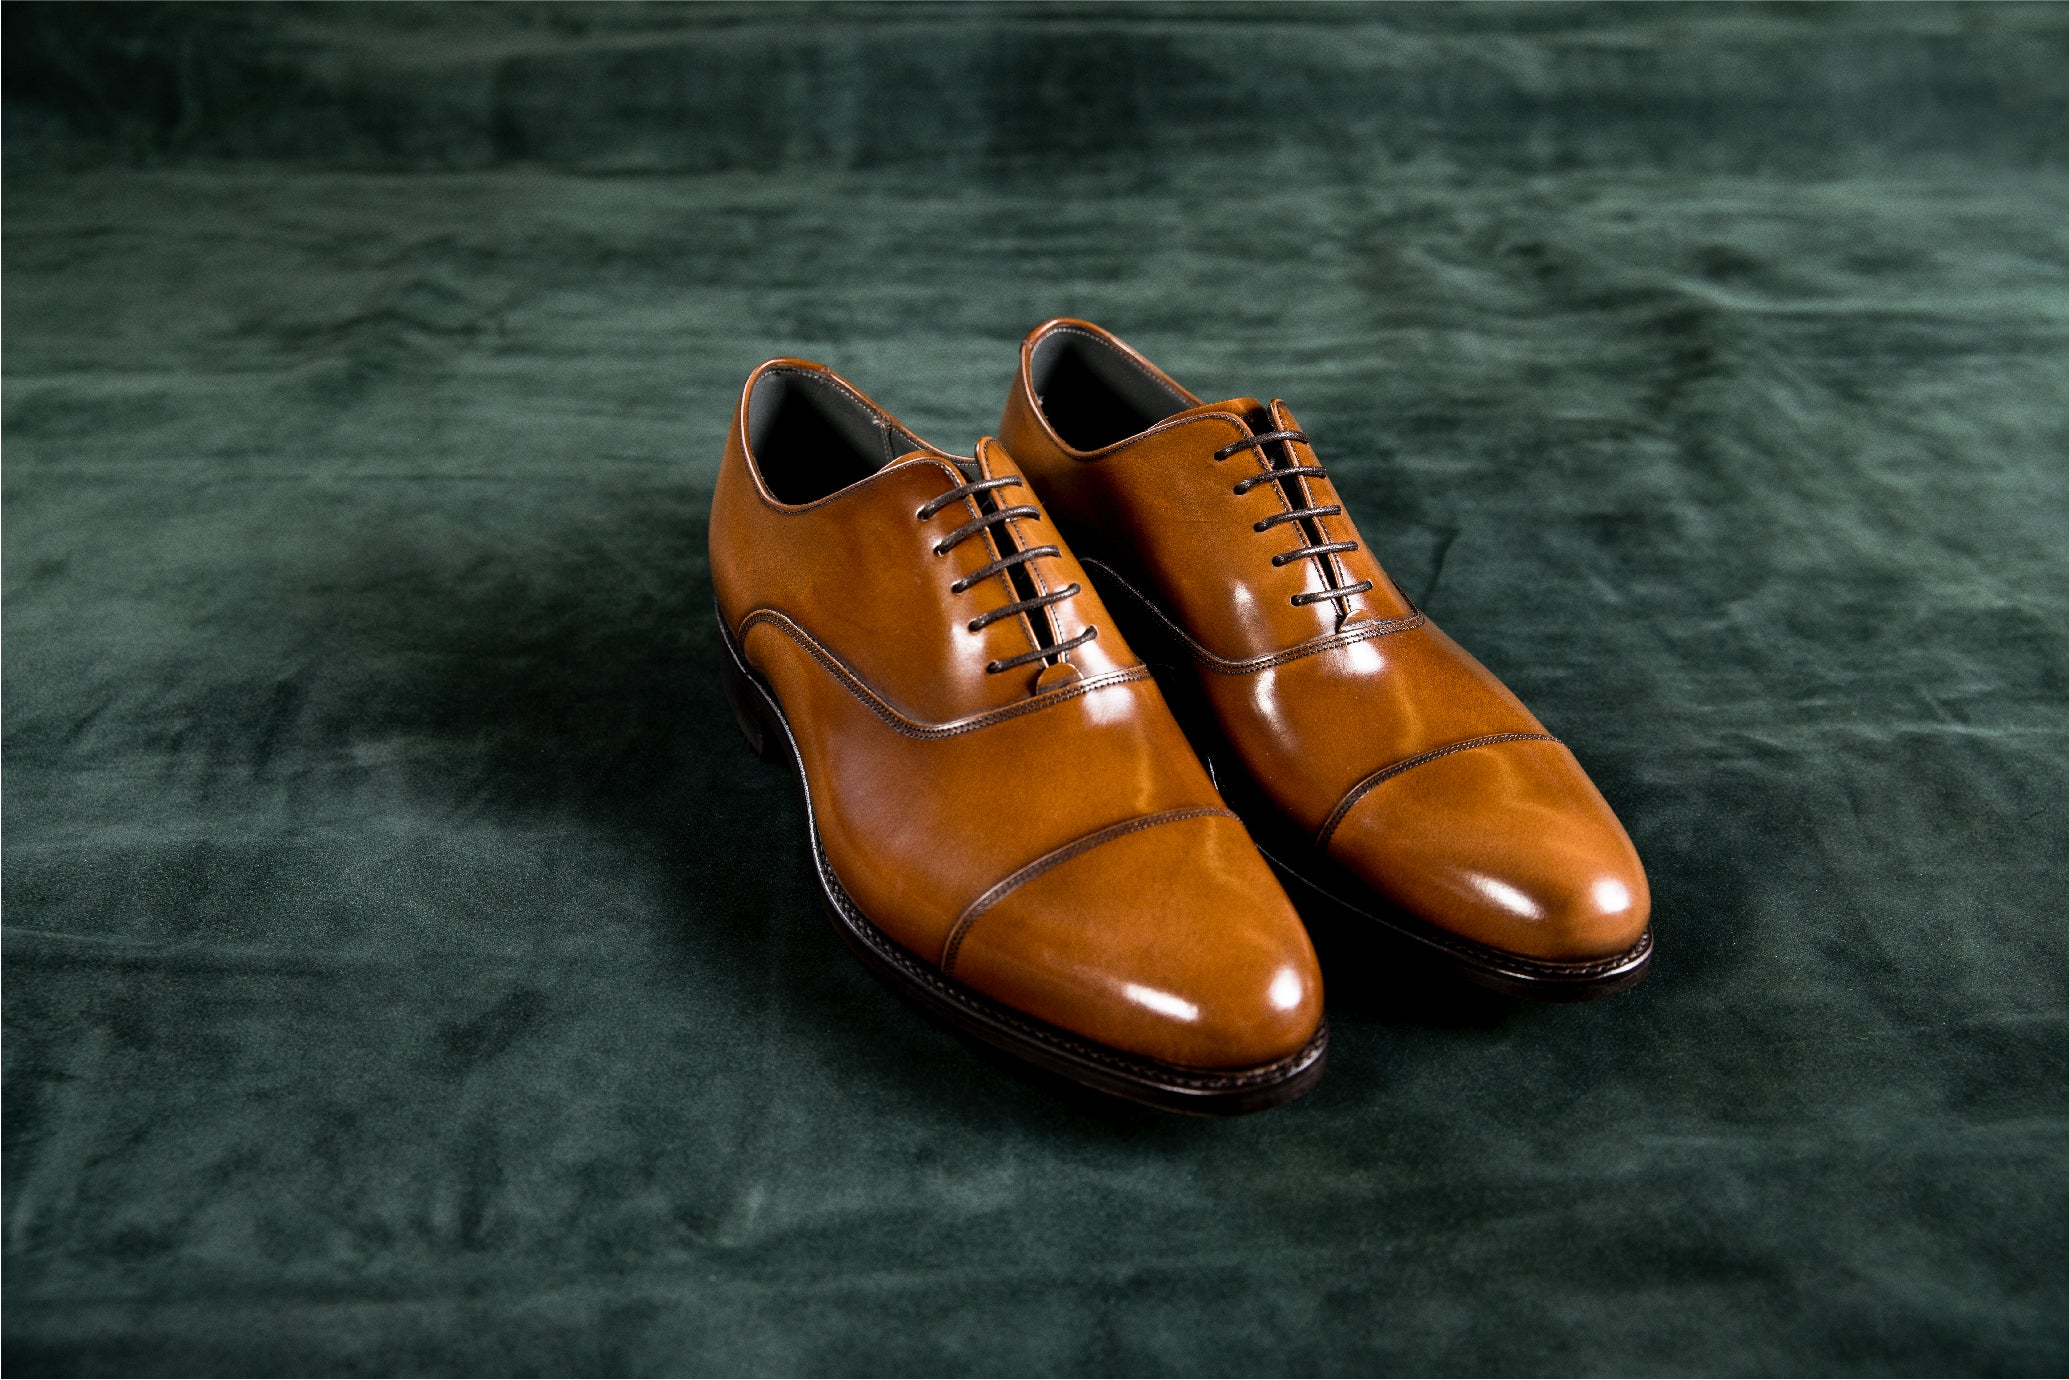 Winsford - Men's Handmade Oxford Shoes By Barker